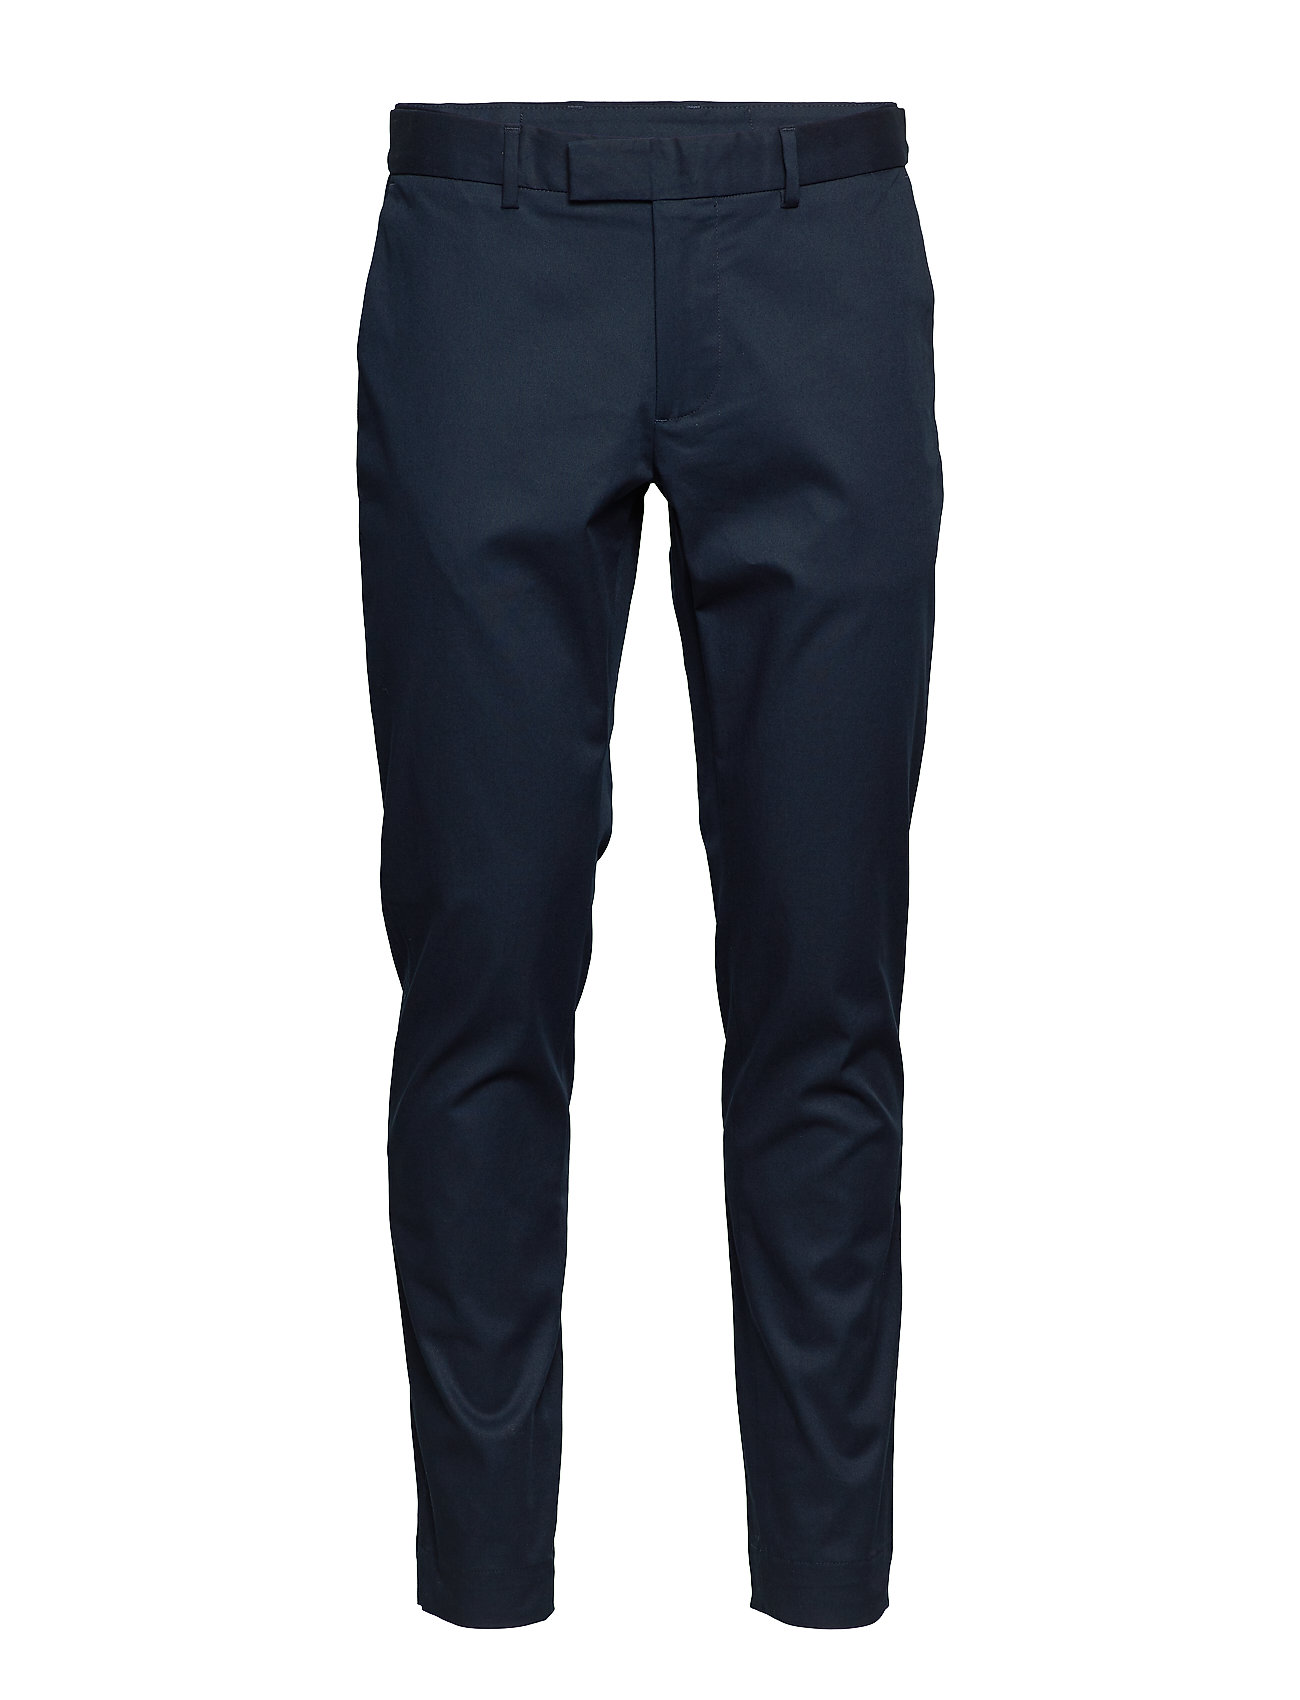 J. Lindeberg Grant 2.0 Travel cotton - JL NAVY